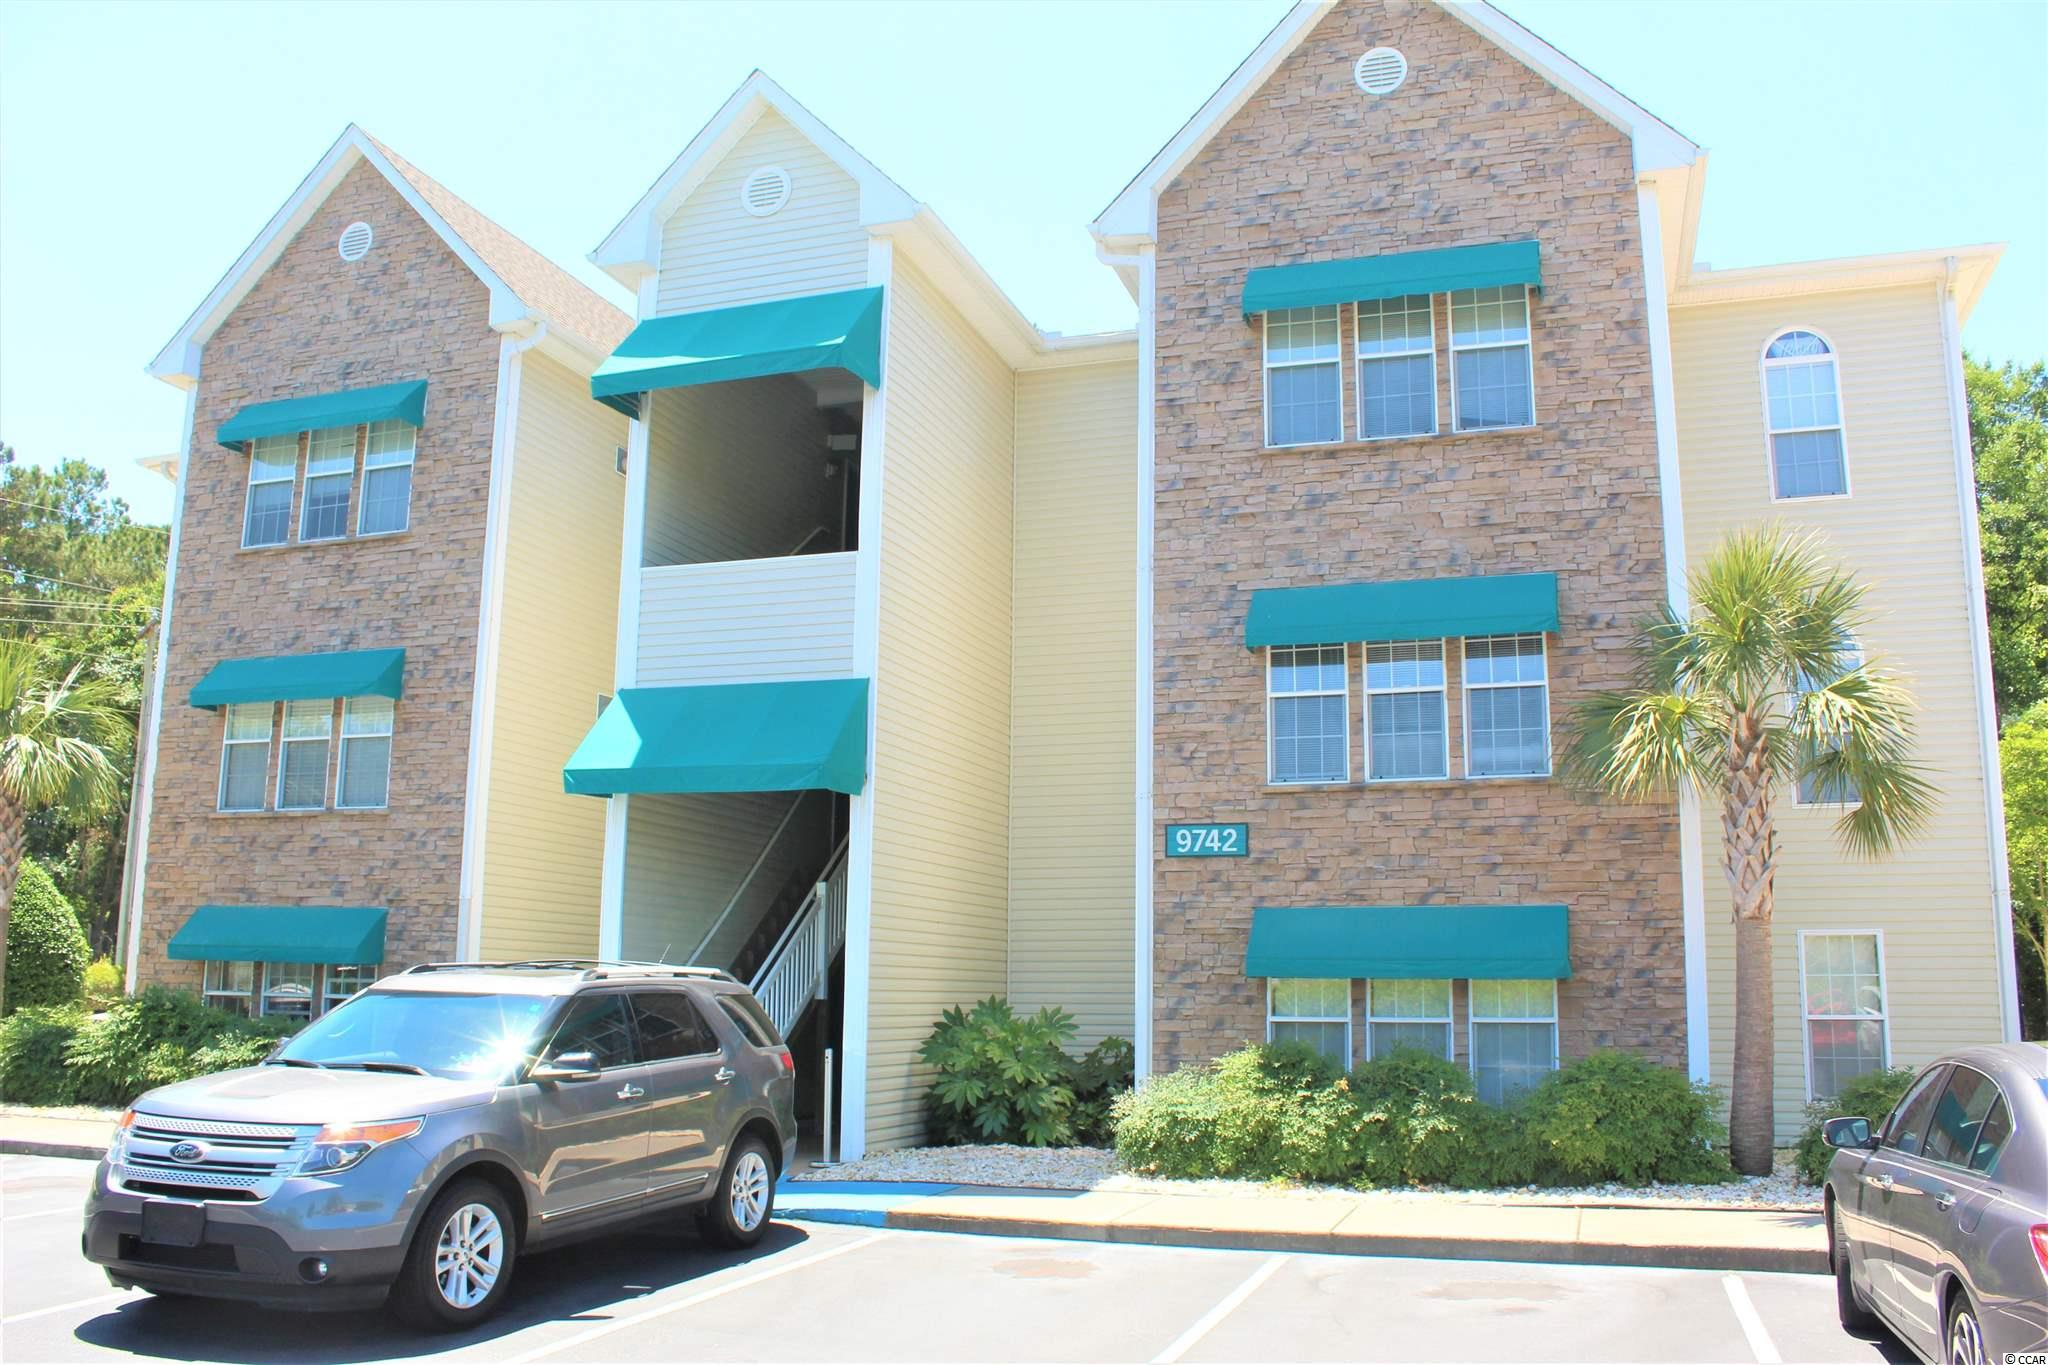 Great opportunity to own a 1 bedroom, 1 bathroom condo located in the gated community of Savannah Shores. This condo features a Carolina Room that can be used as an office, a playroom, or as a second bedroom. There is a full-size laundry room in the condo for even more convenience. To top it all off, this development is well maintained and features a beautiful pool, a tennis court, a playground, a fitness room and even a clubhouse. Located near all area shopping, dining, entertainment, golfing and more! All this and just a short golf cart ride to the beach. Must see to fully appreciate!